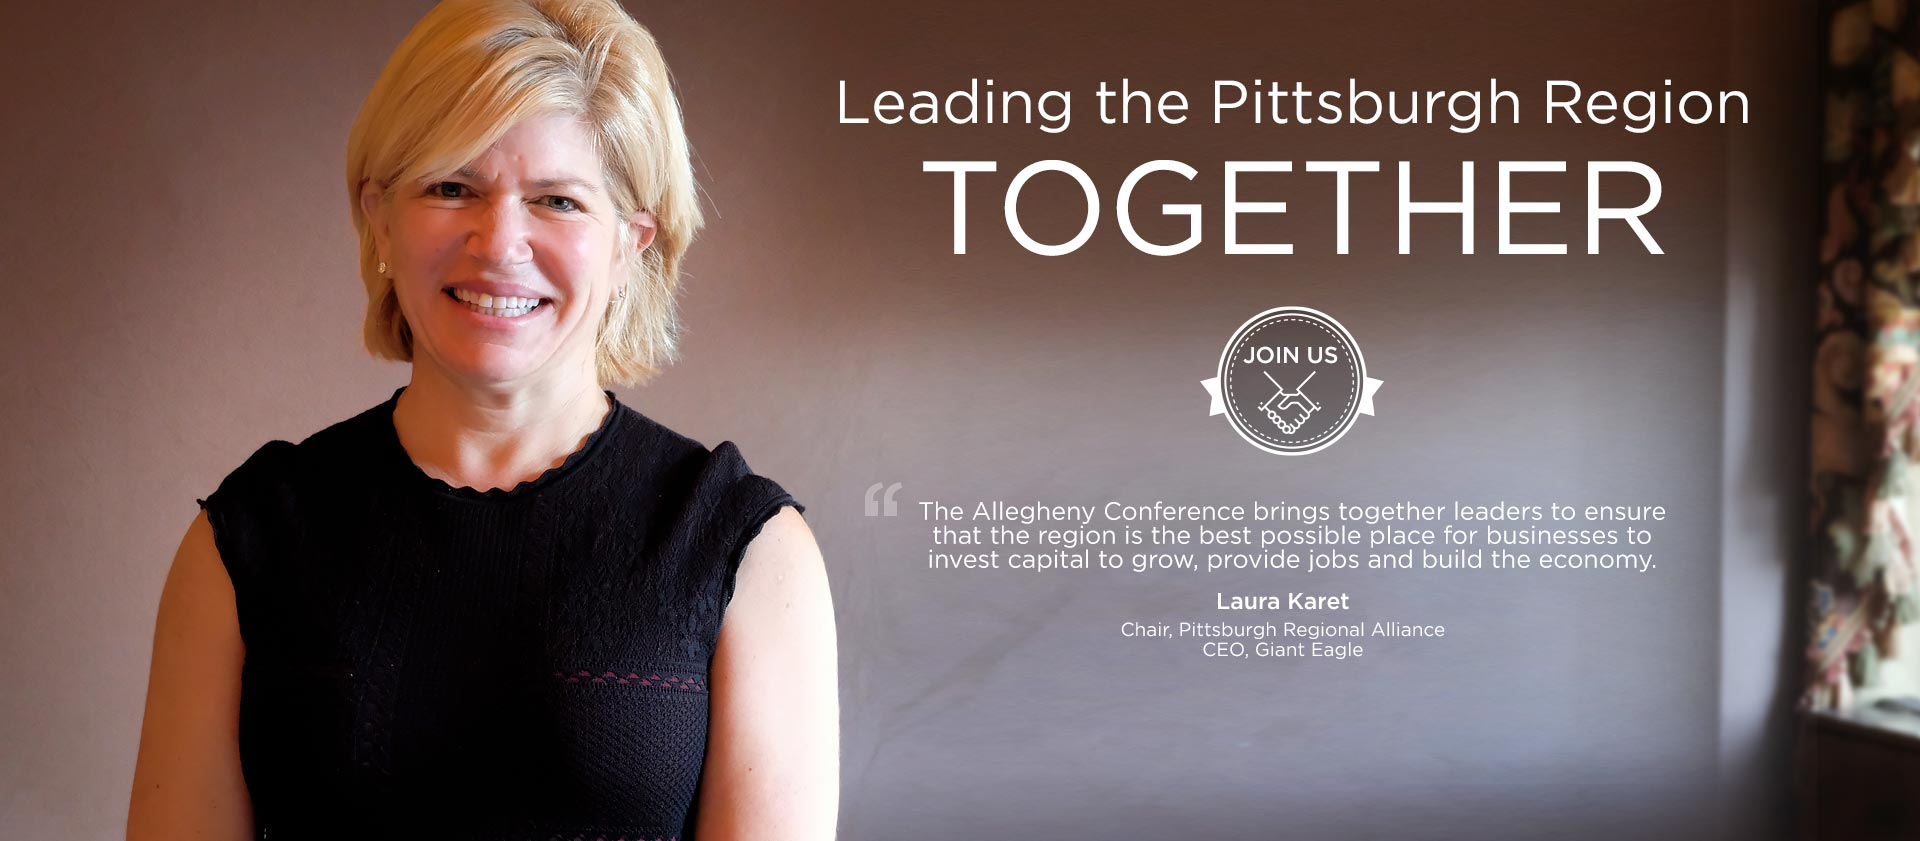 Laura Karet – Chair, Pittsburgh Regional Alliance – CEO, Giant Eagle